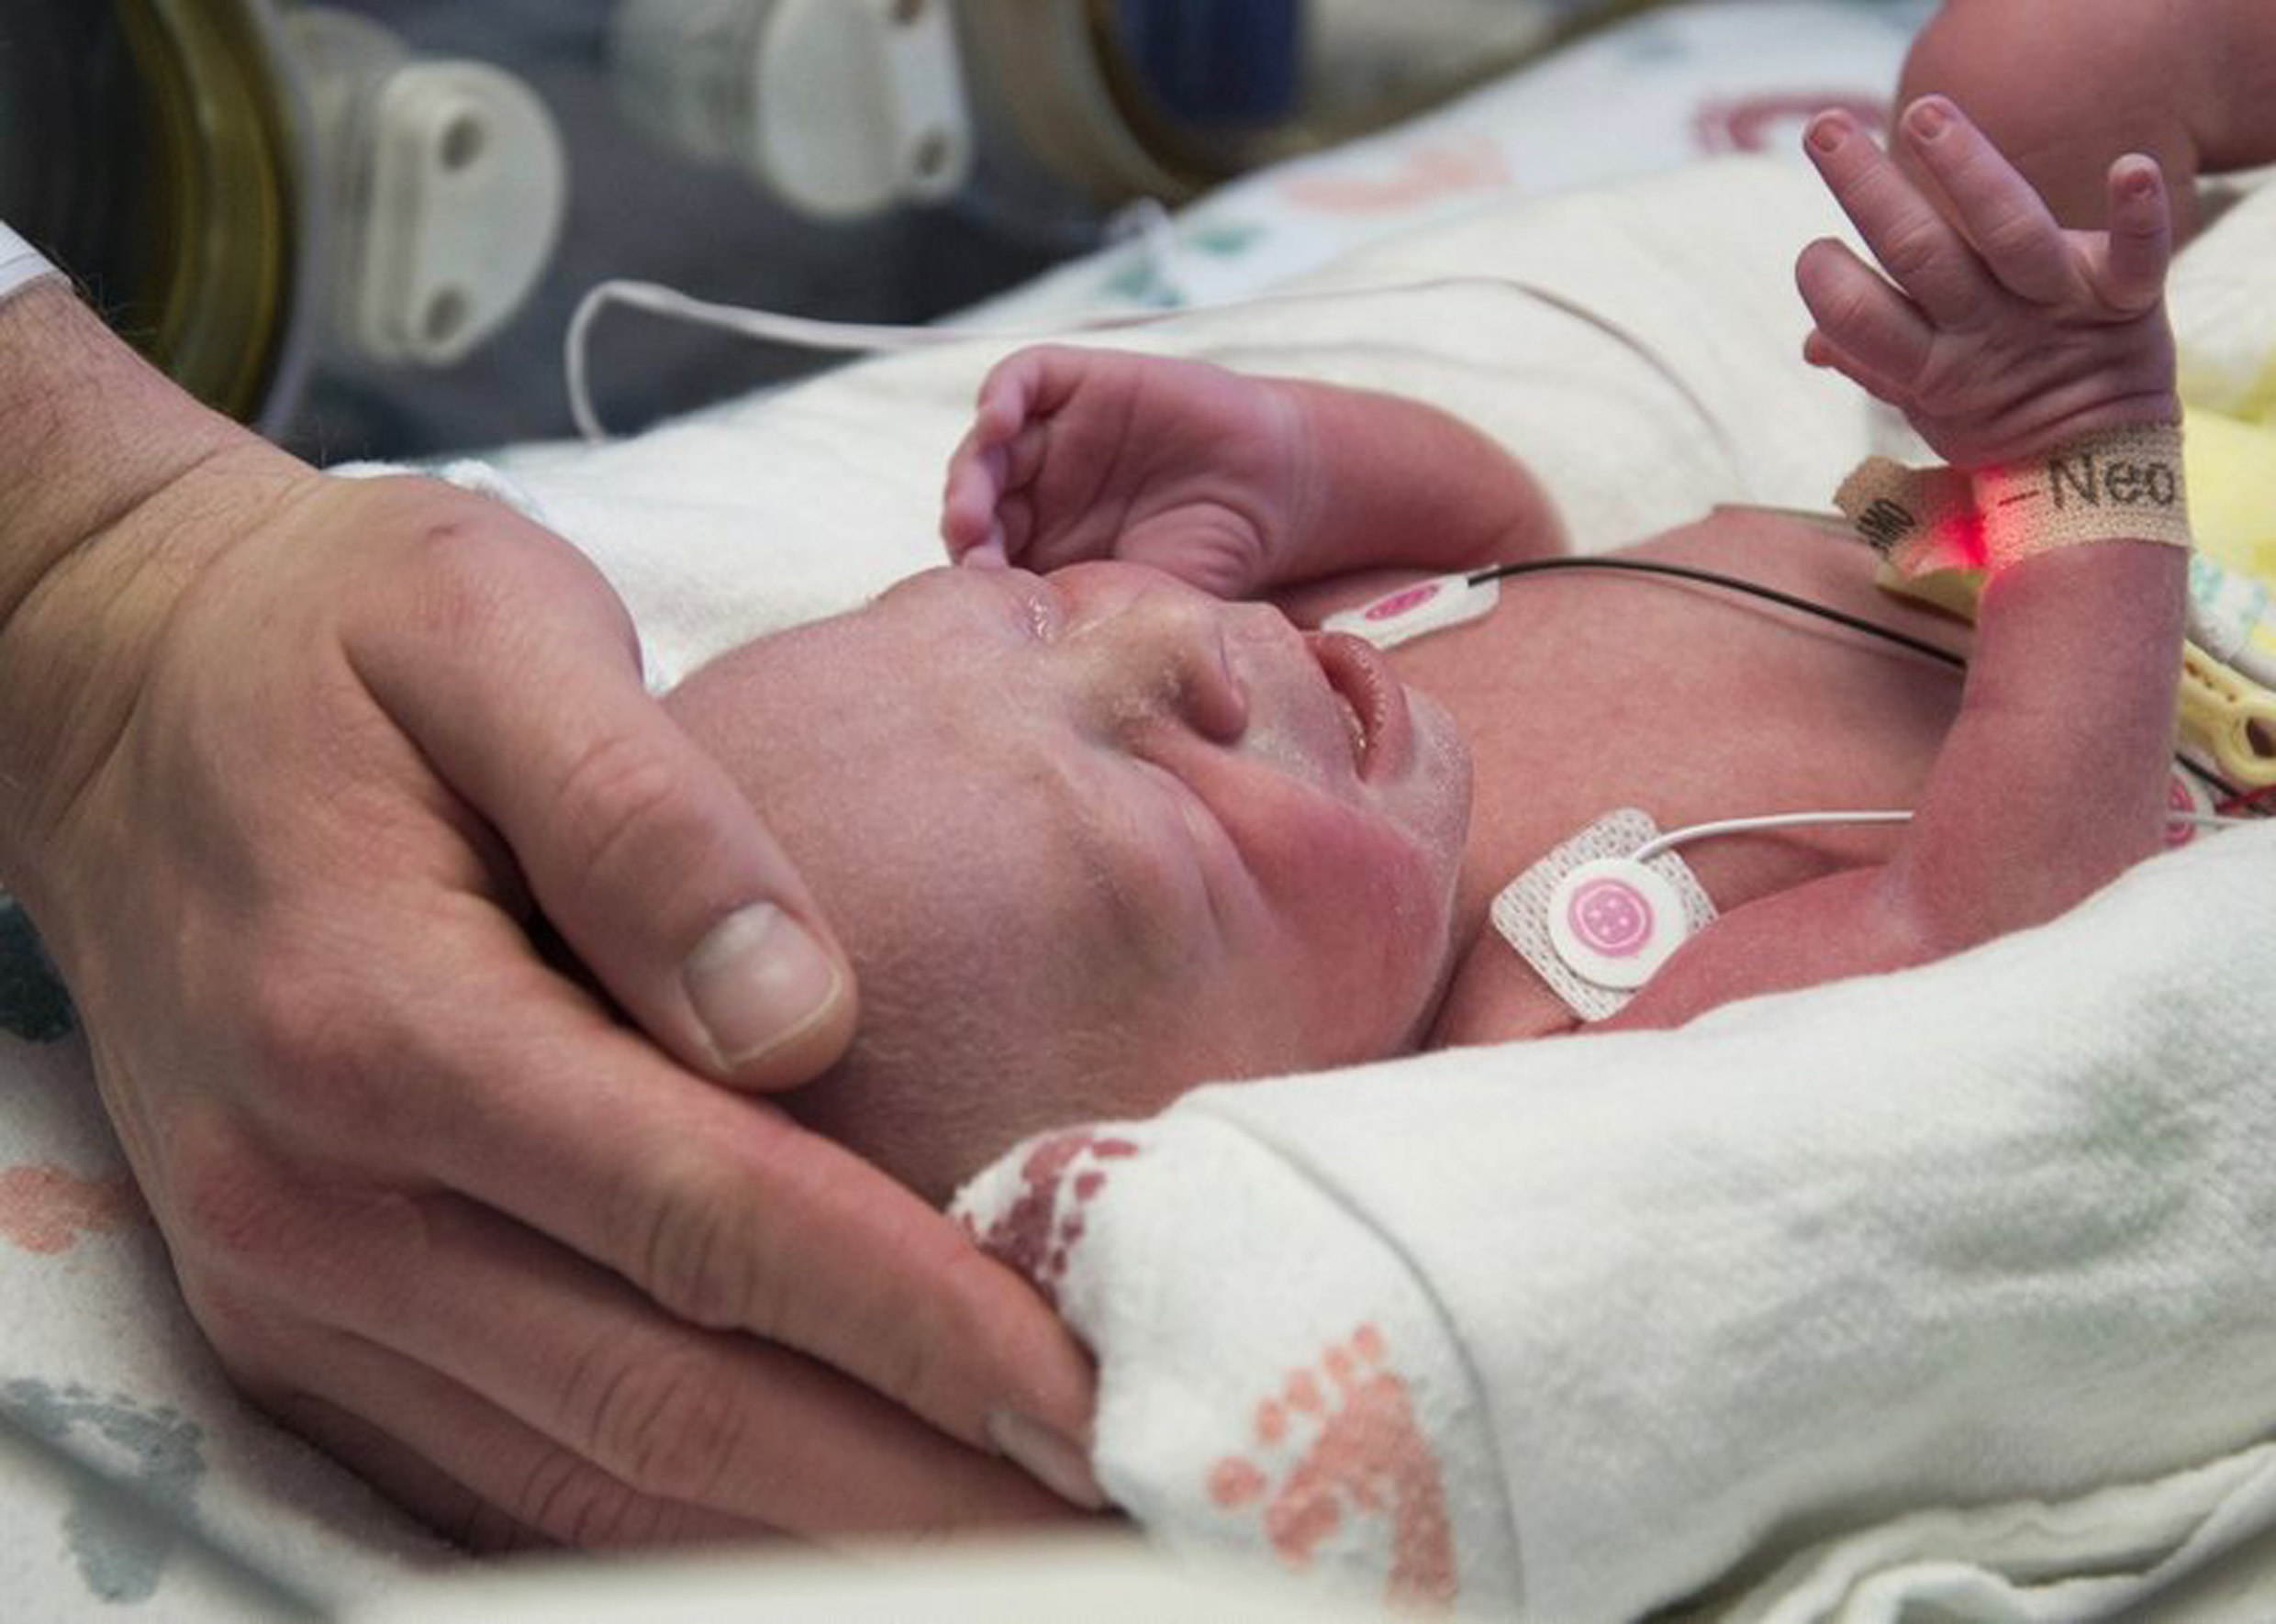 Baby born from uterus transplant.